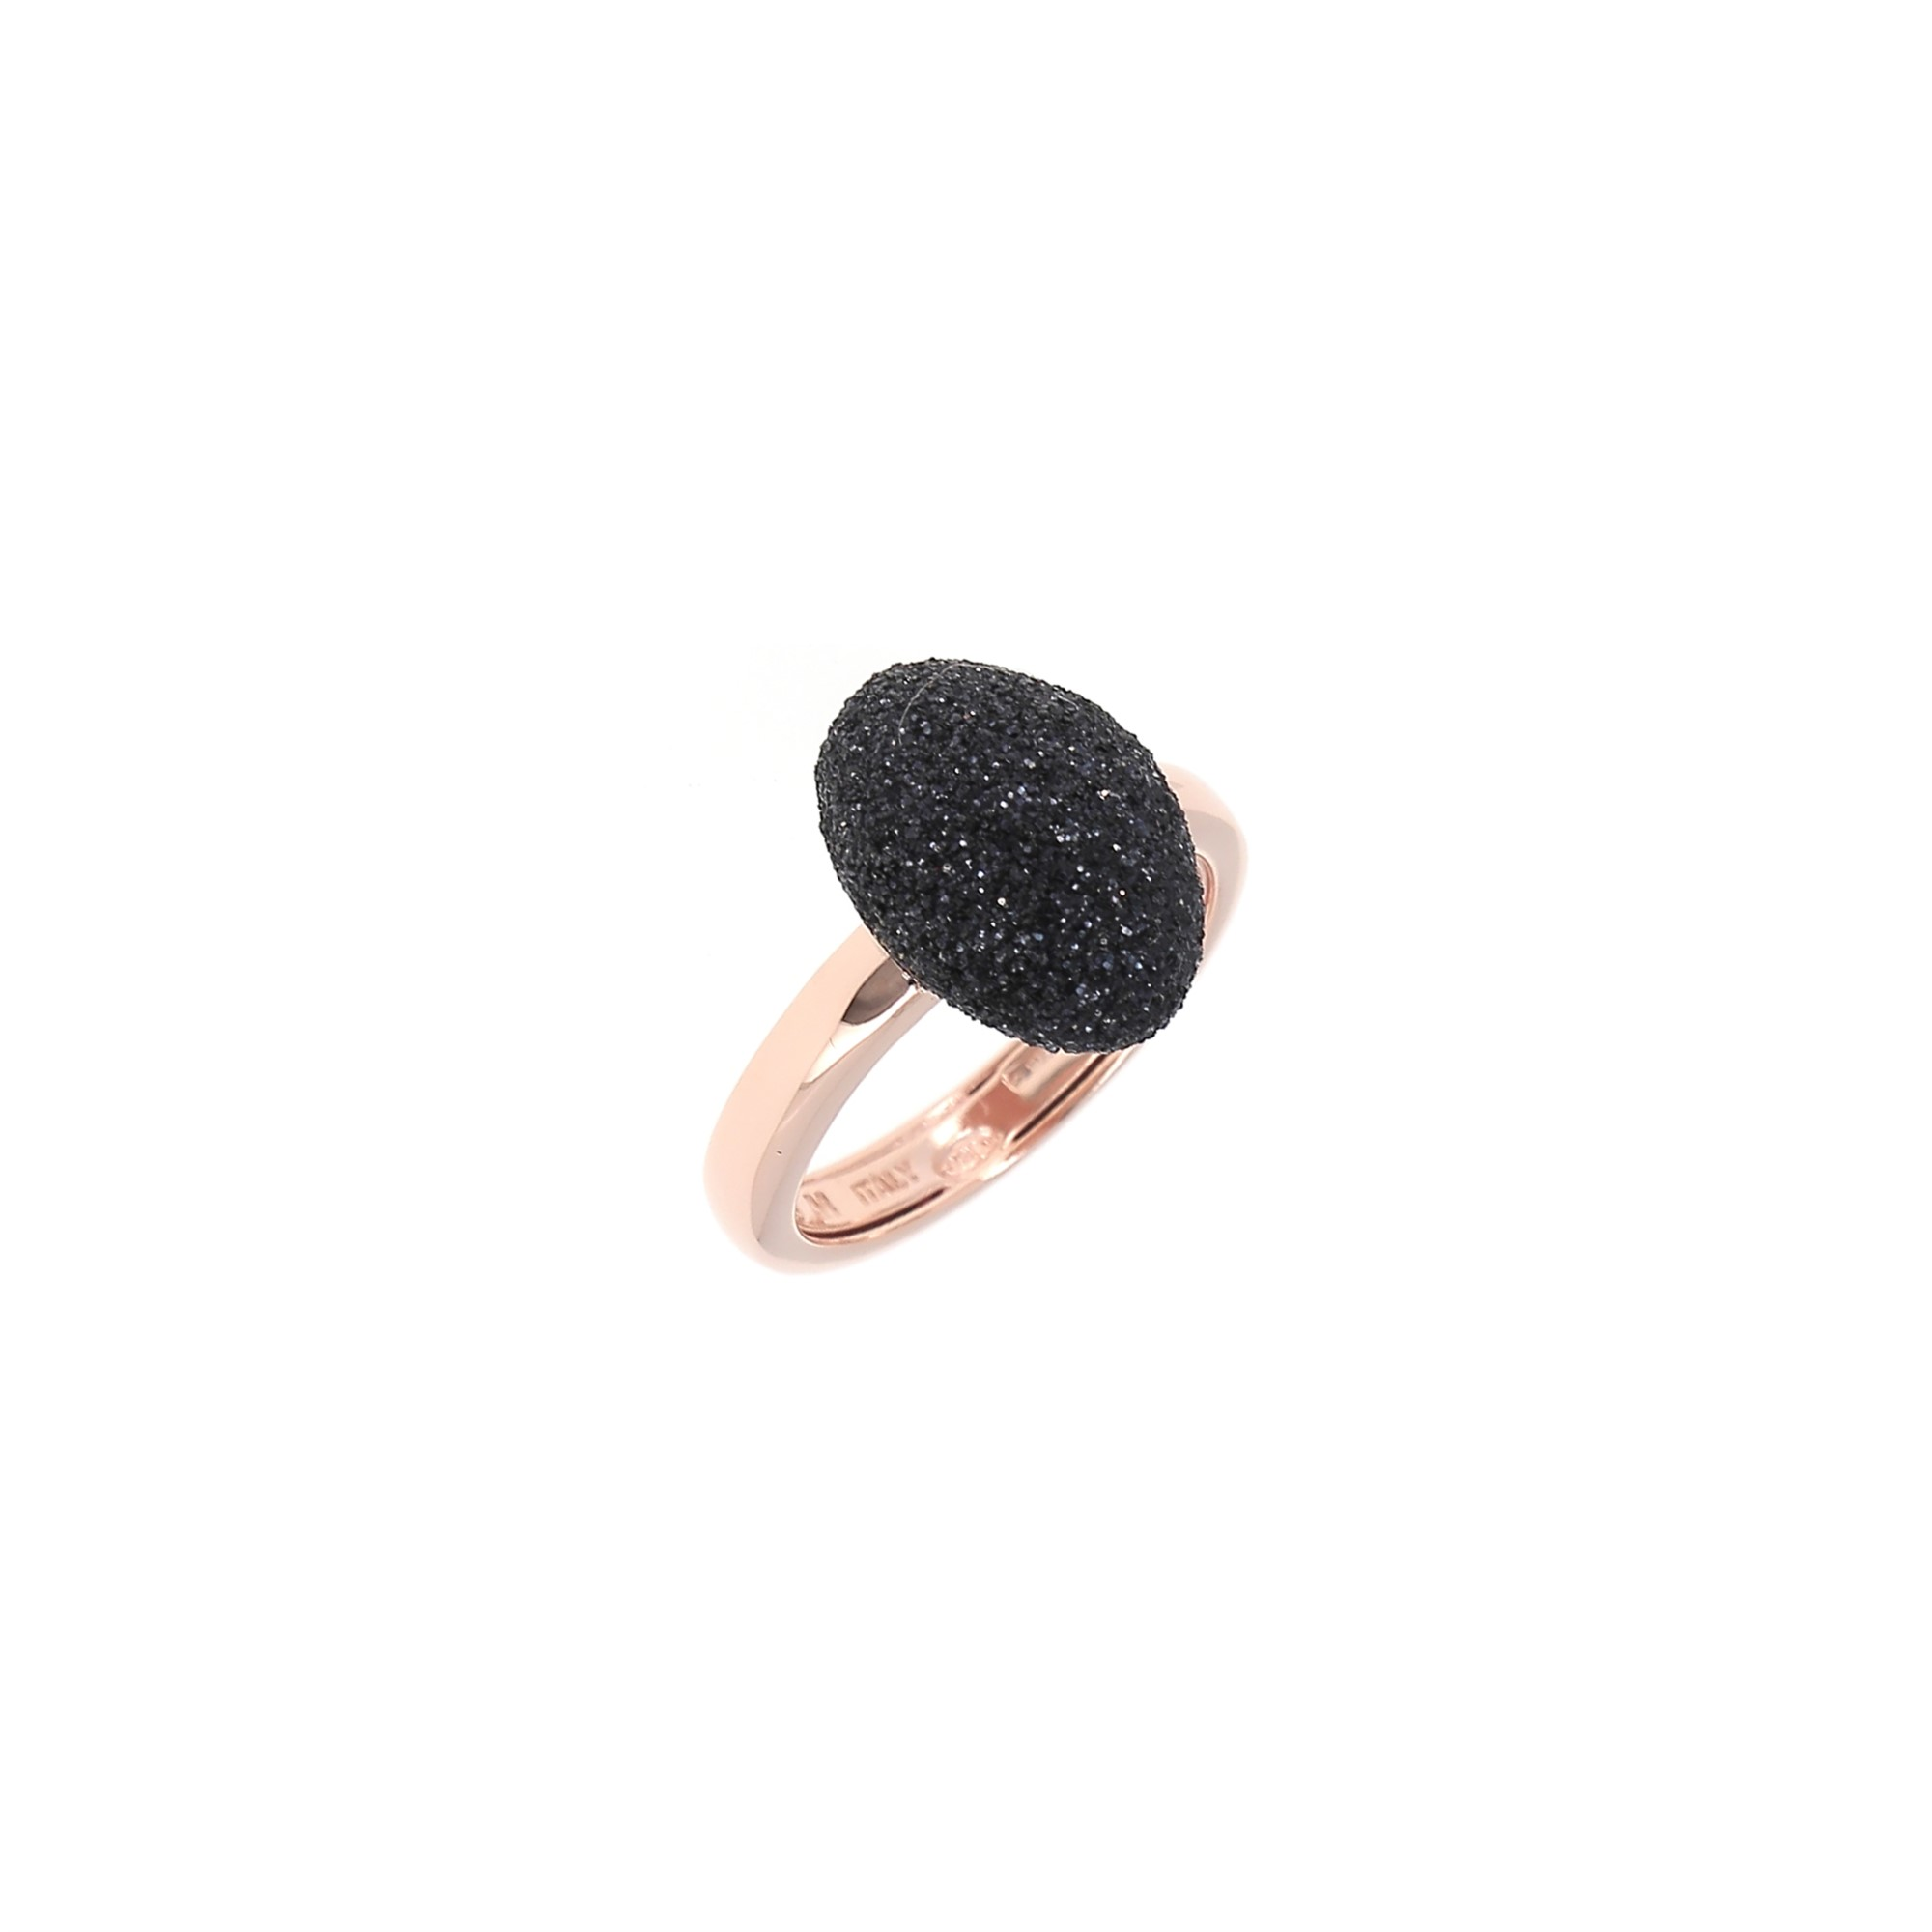 Pesavento  Sterling Silver  Black Polvere Silver Rings without Stones WPLVA1256/M